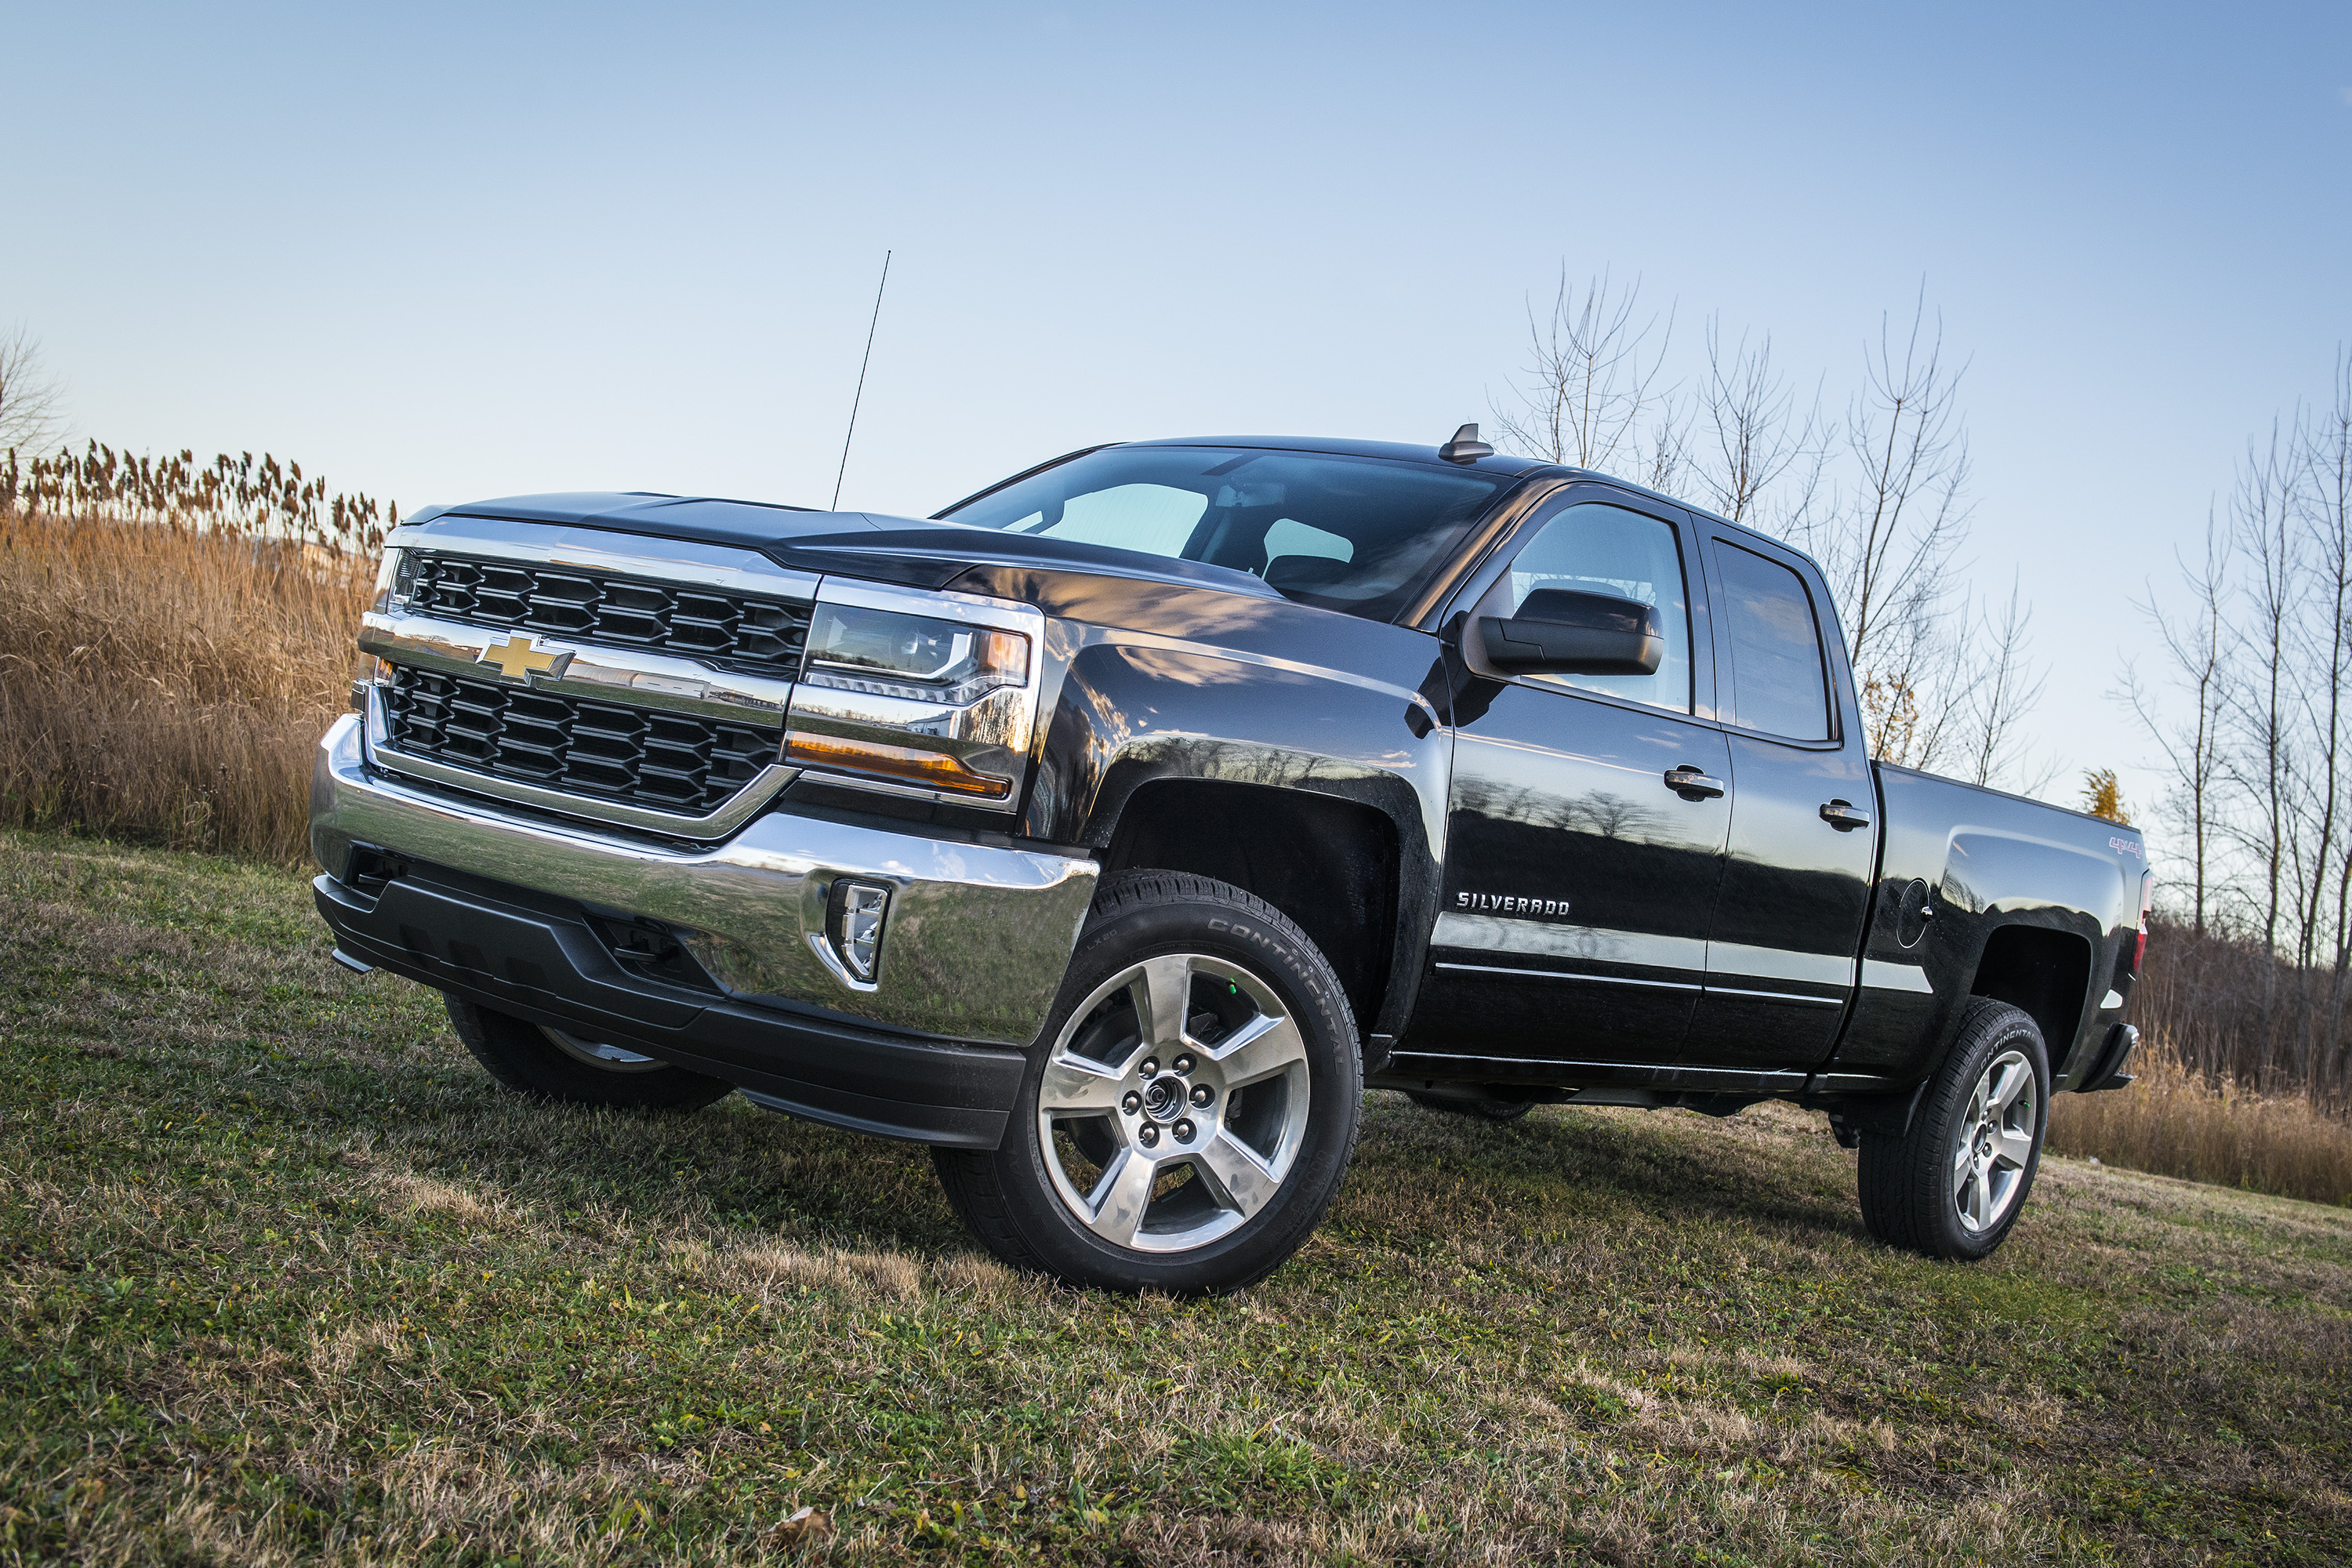 2016 Chevrolet Silverado 1500 Double Cab >> 2017 Chevy/GMC 1500 Lift Kits by BDS Suspension